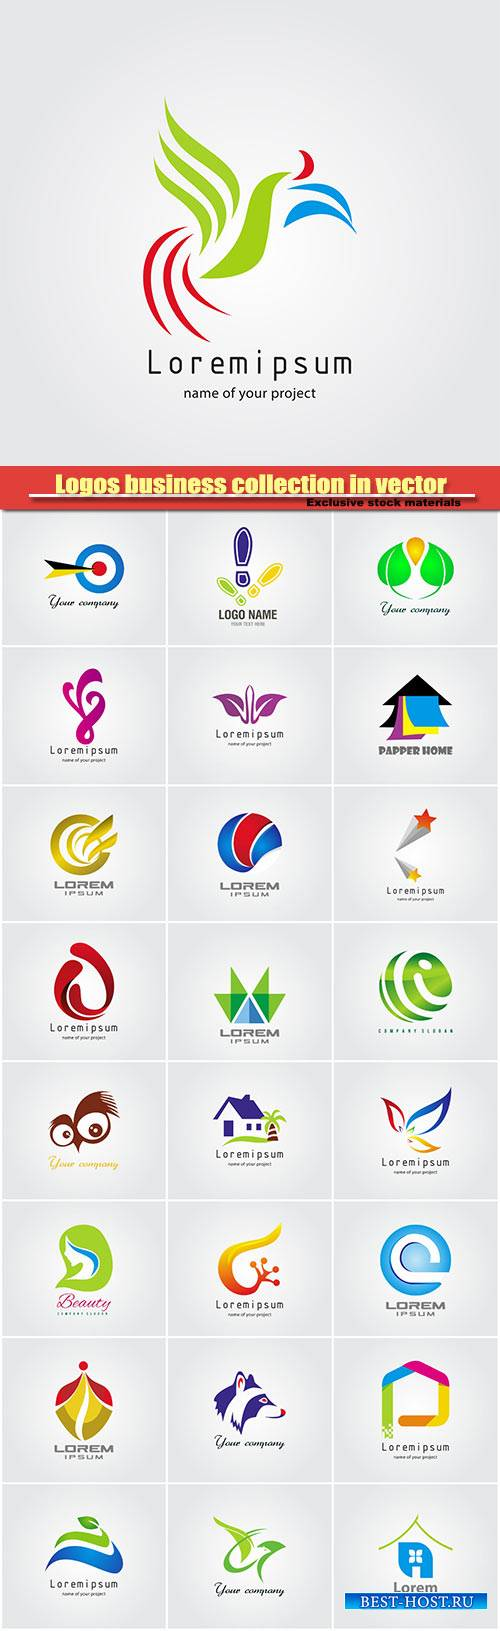 Logos business collection in vector #11